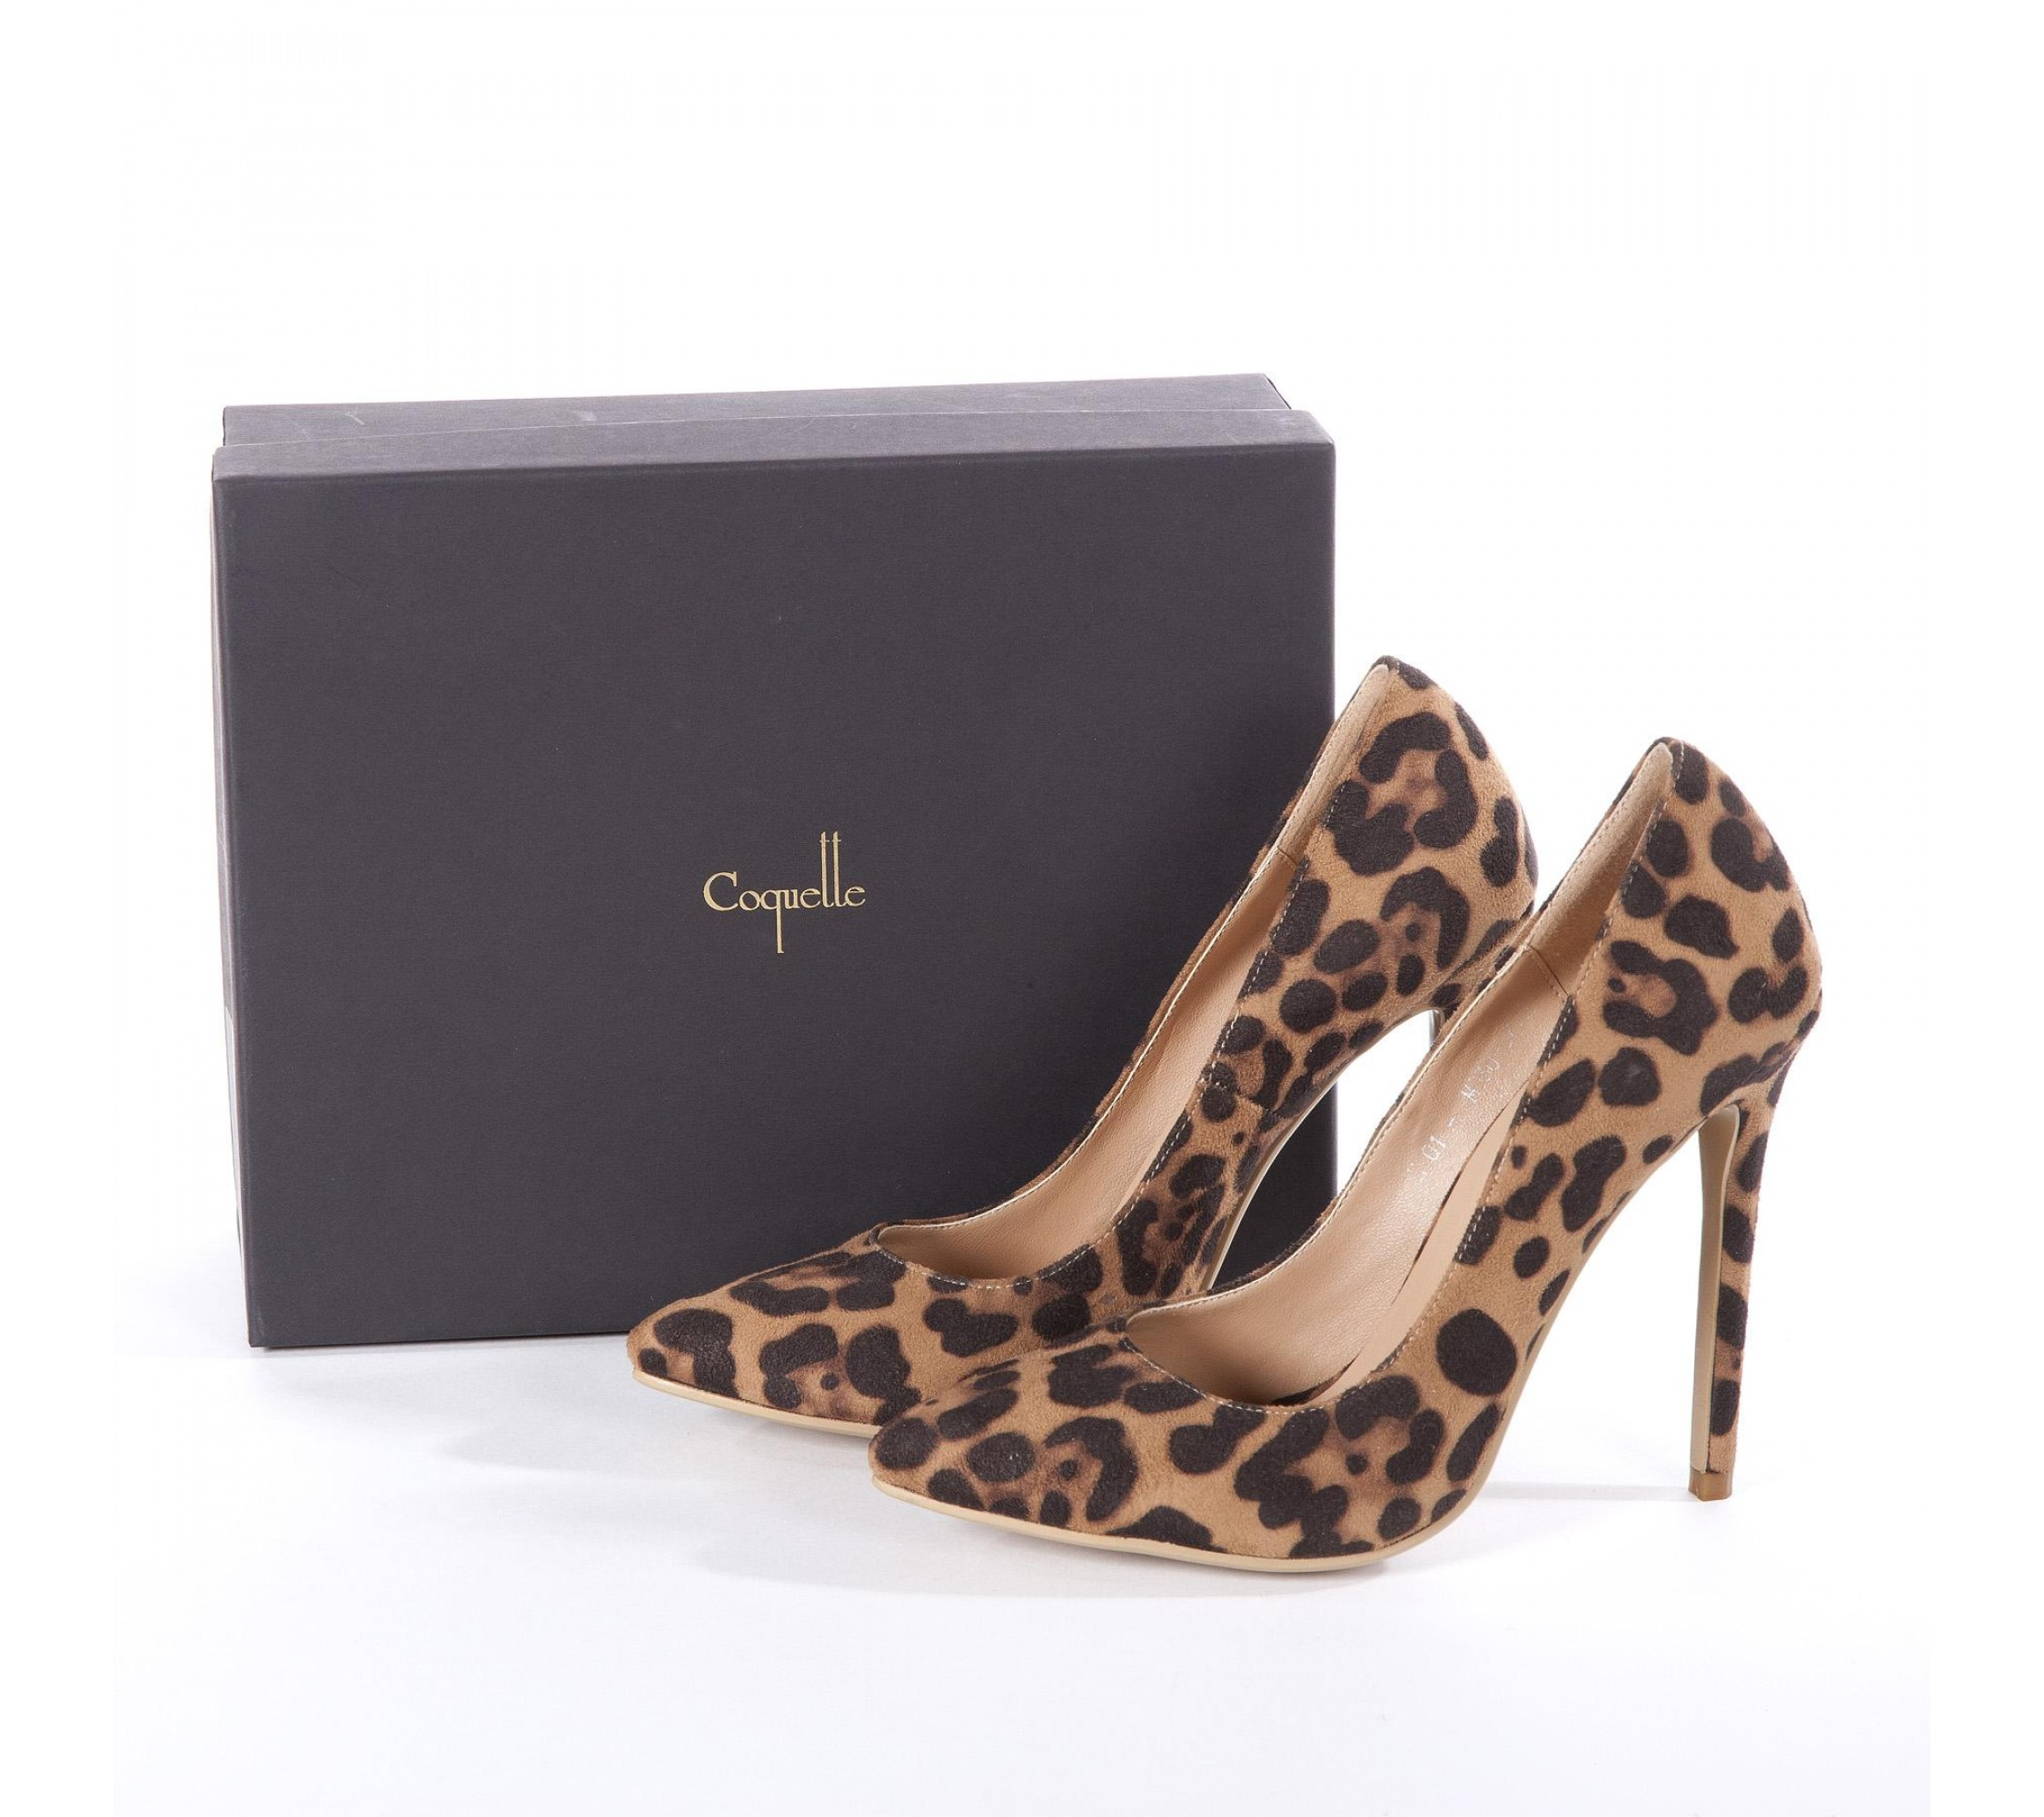 Vegane Pumps Leoparden